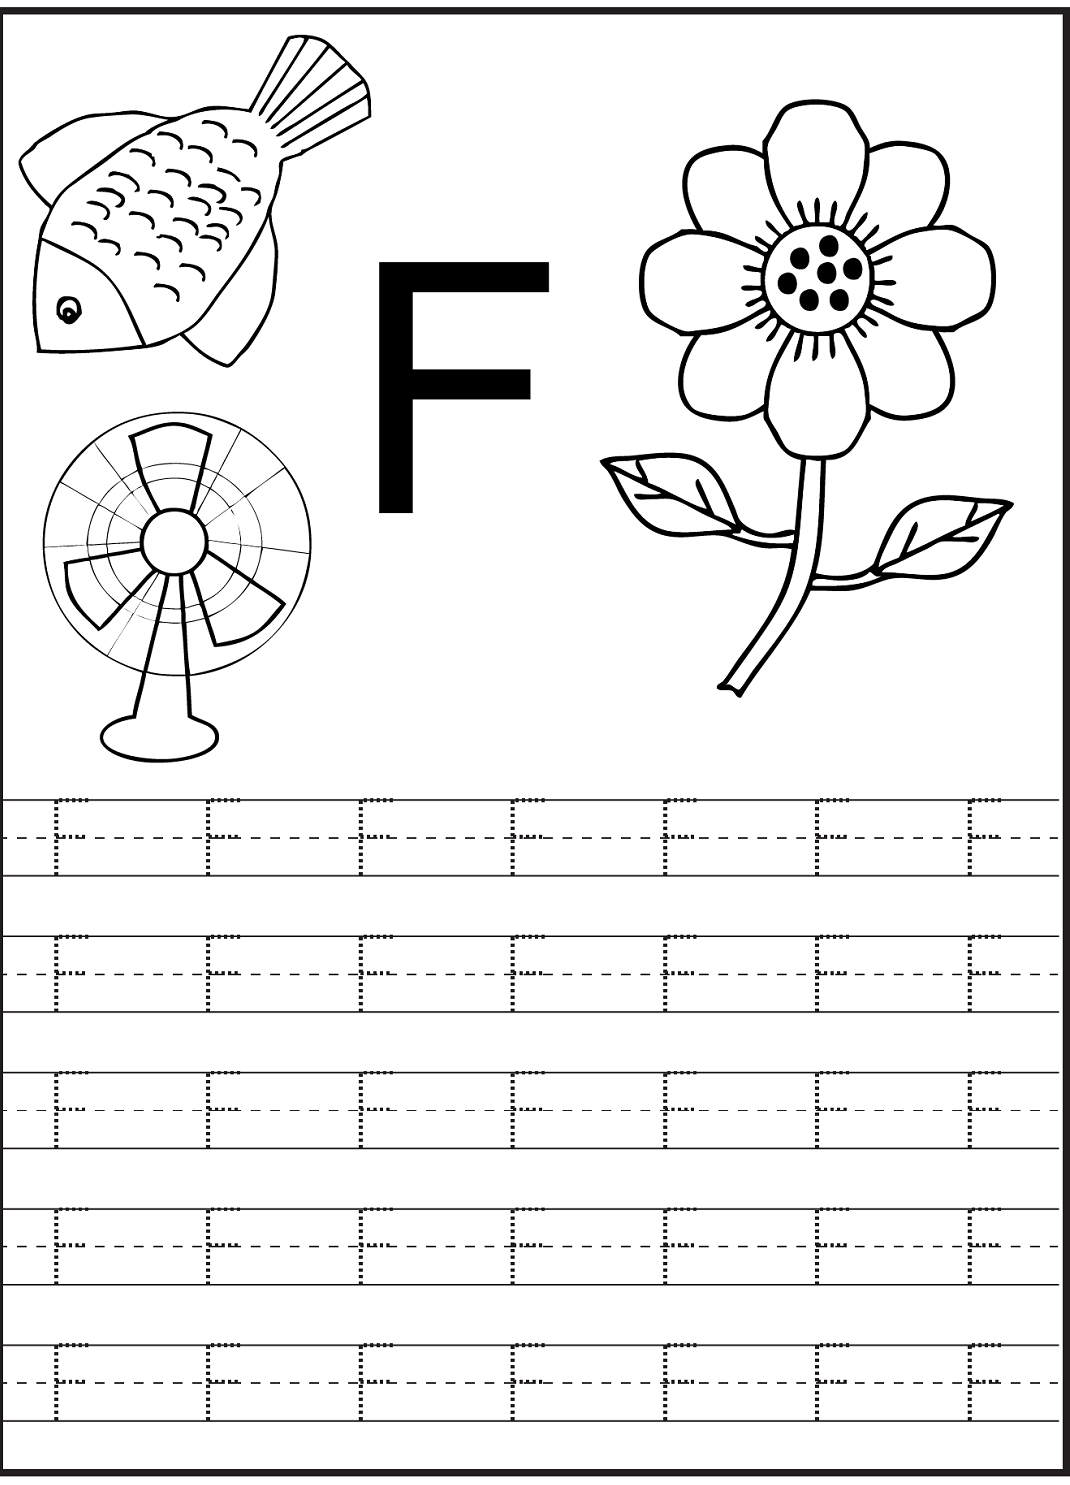 911 Worksheet For Preschoolers